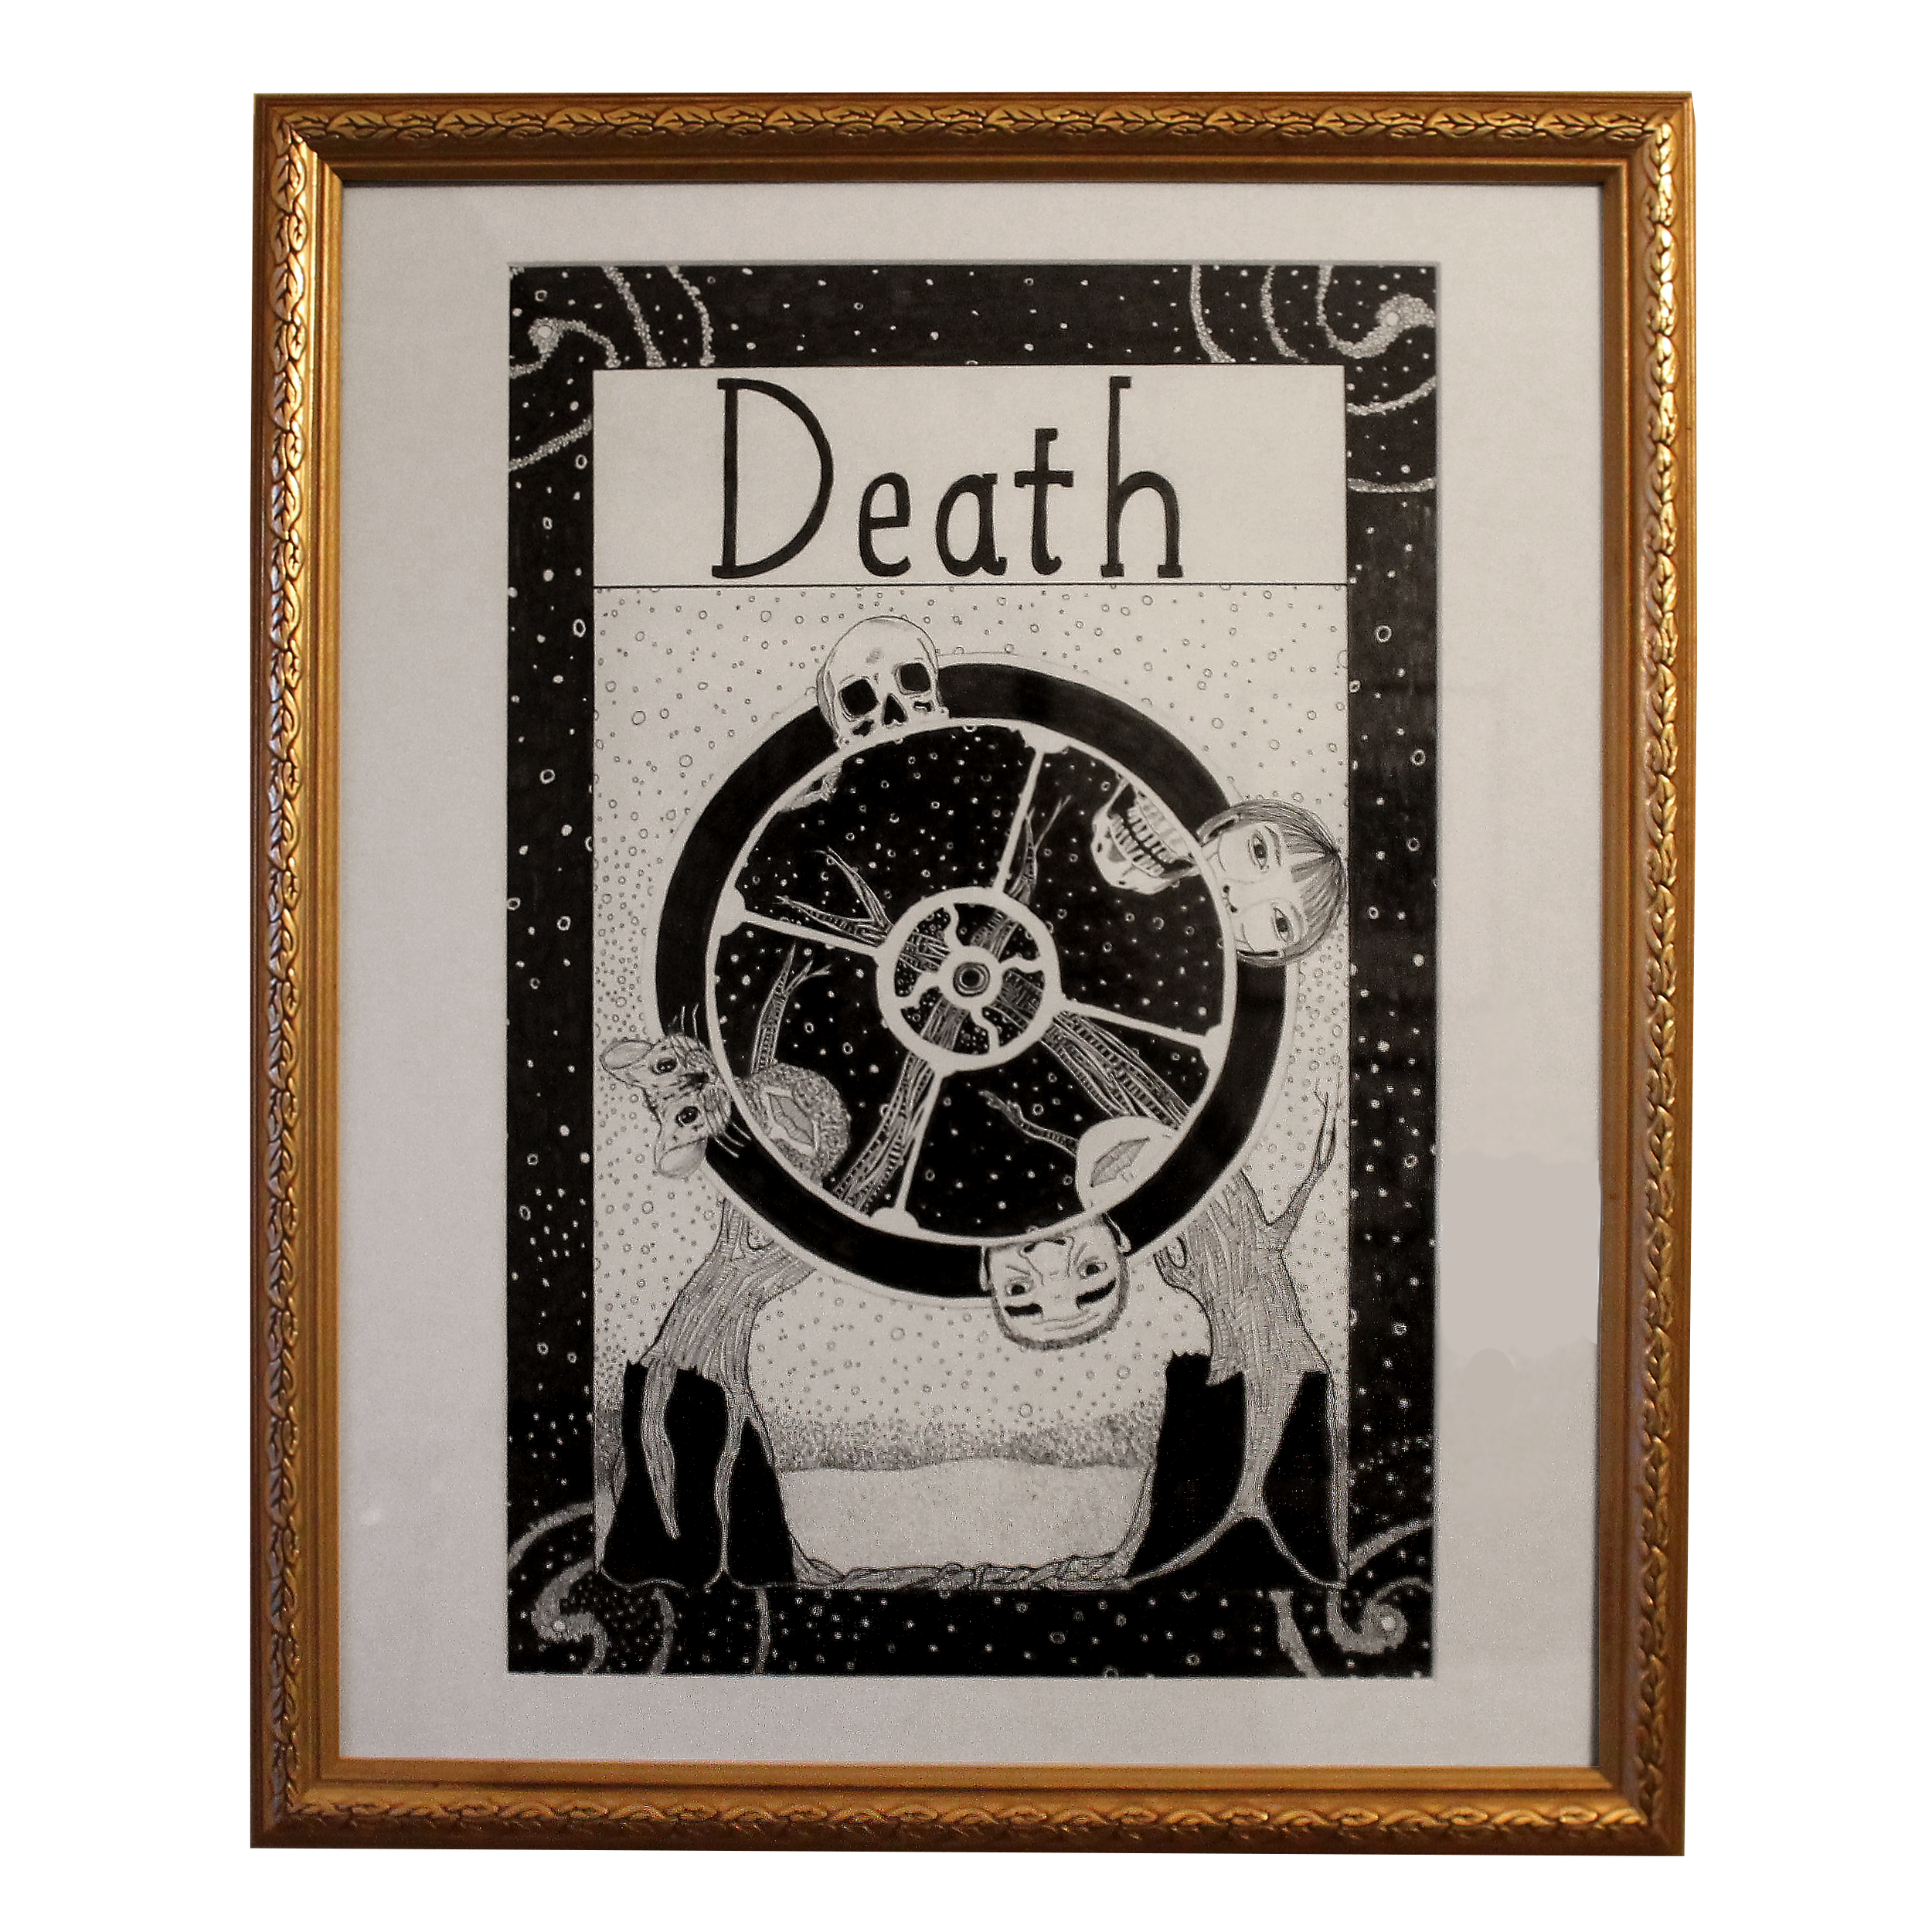 Original Framed Art $300. Click on the image to purchase on Ghost Gallery's Shop